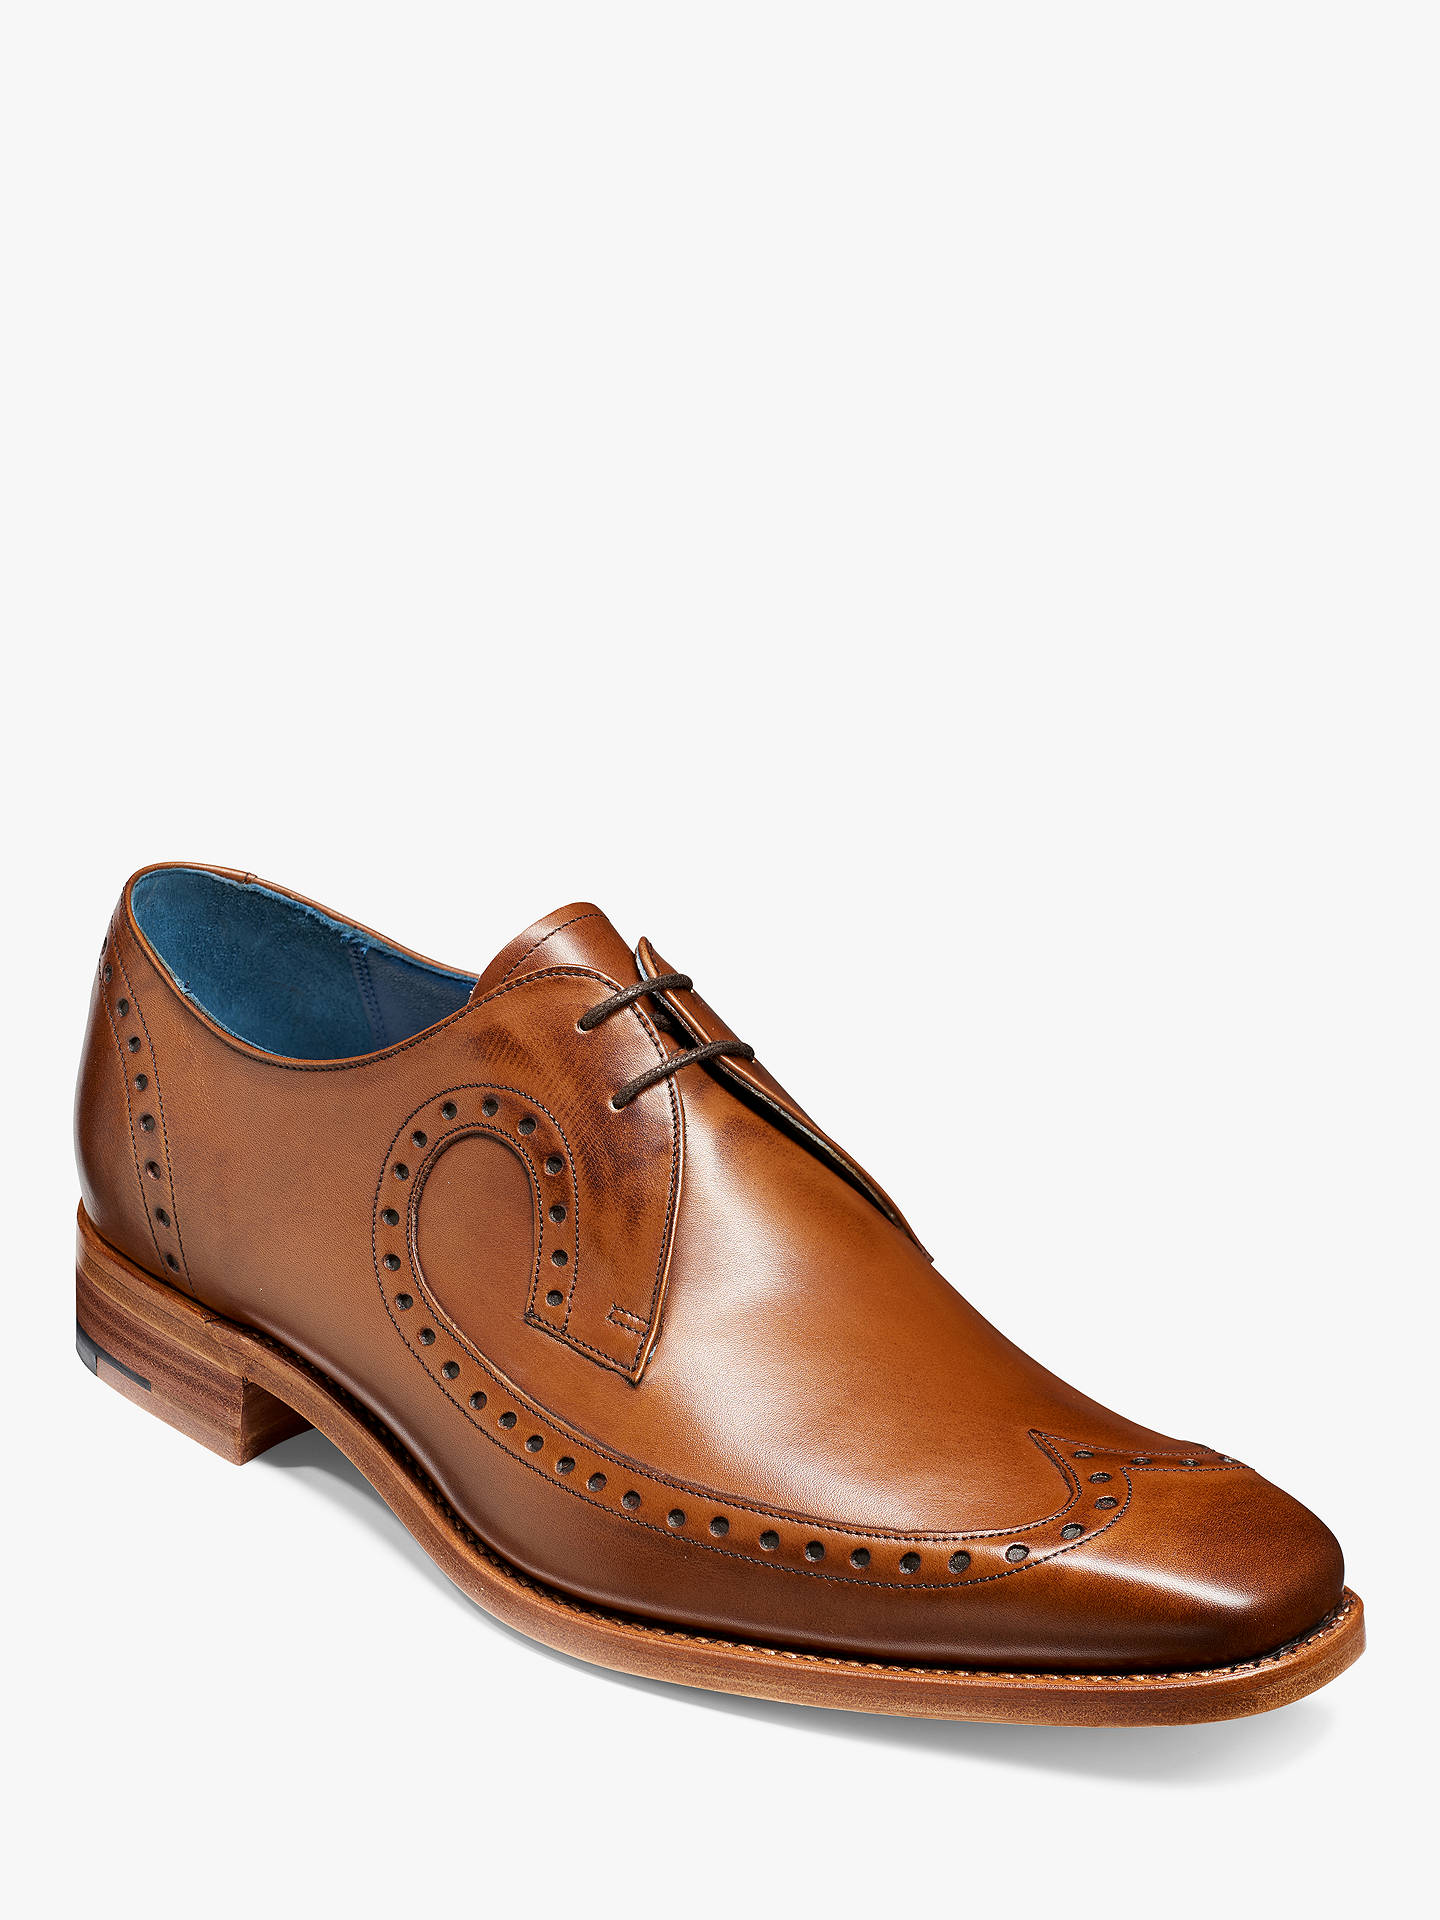 BuyBarker Woody Goodyear Welt Brogue Derby Shoes, Walnut, 8 Online at johnlewis.com